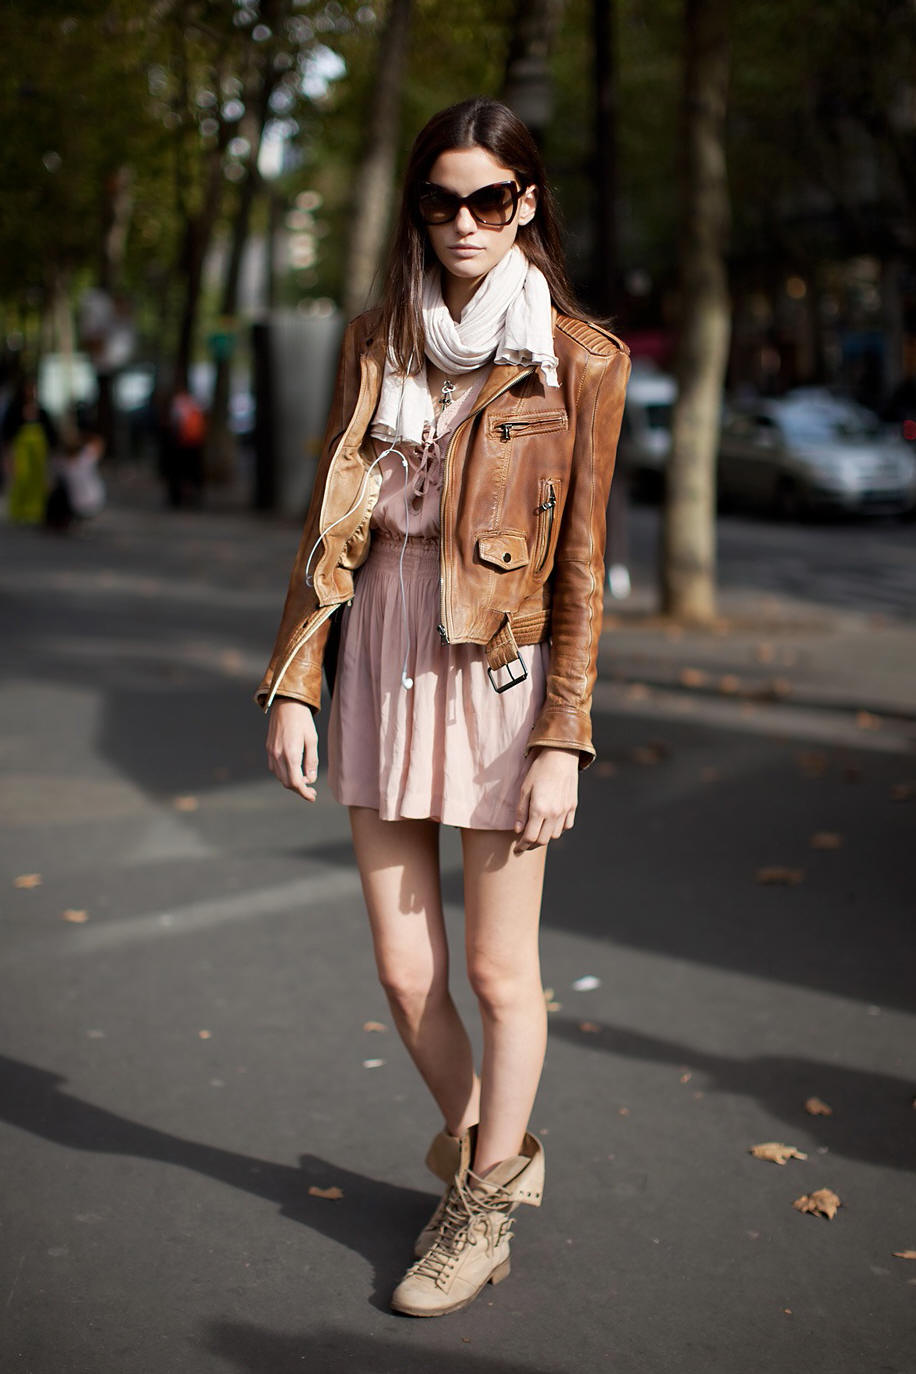 boots shopping design ideas pictures and inspiration